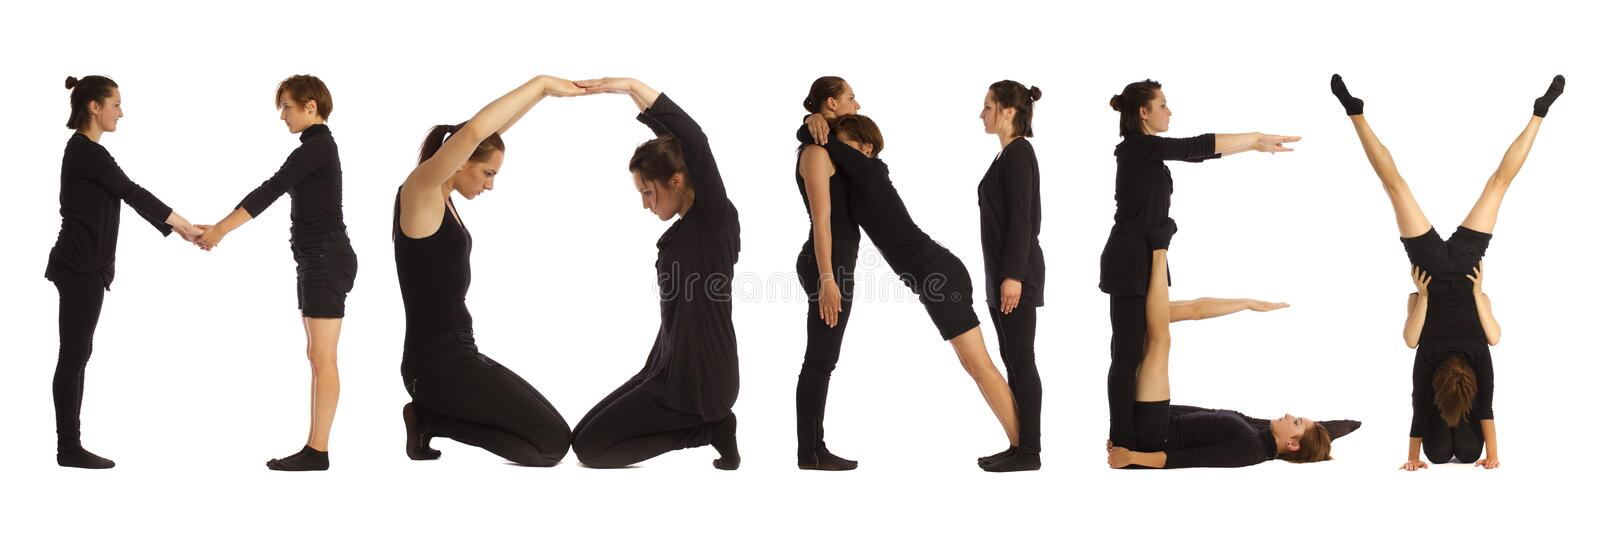 Download Black Dressed People Forming MONEY Word Stock Photo - Image: 96813722